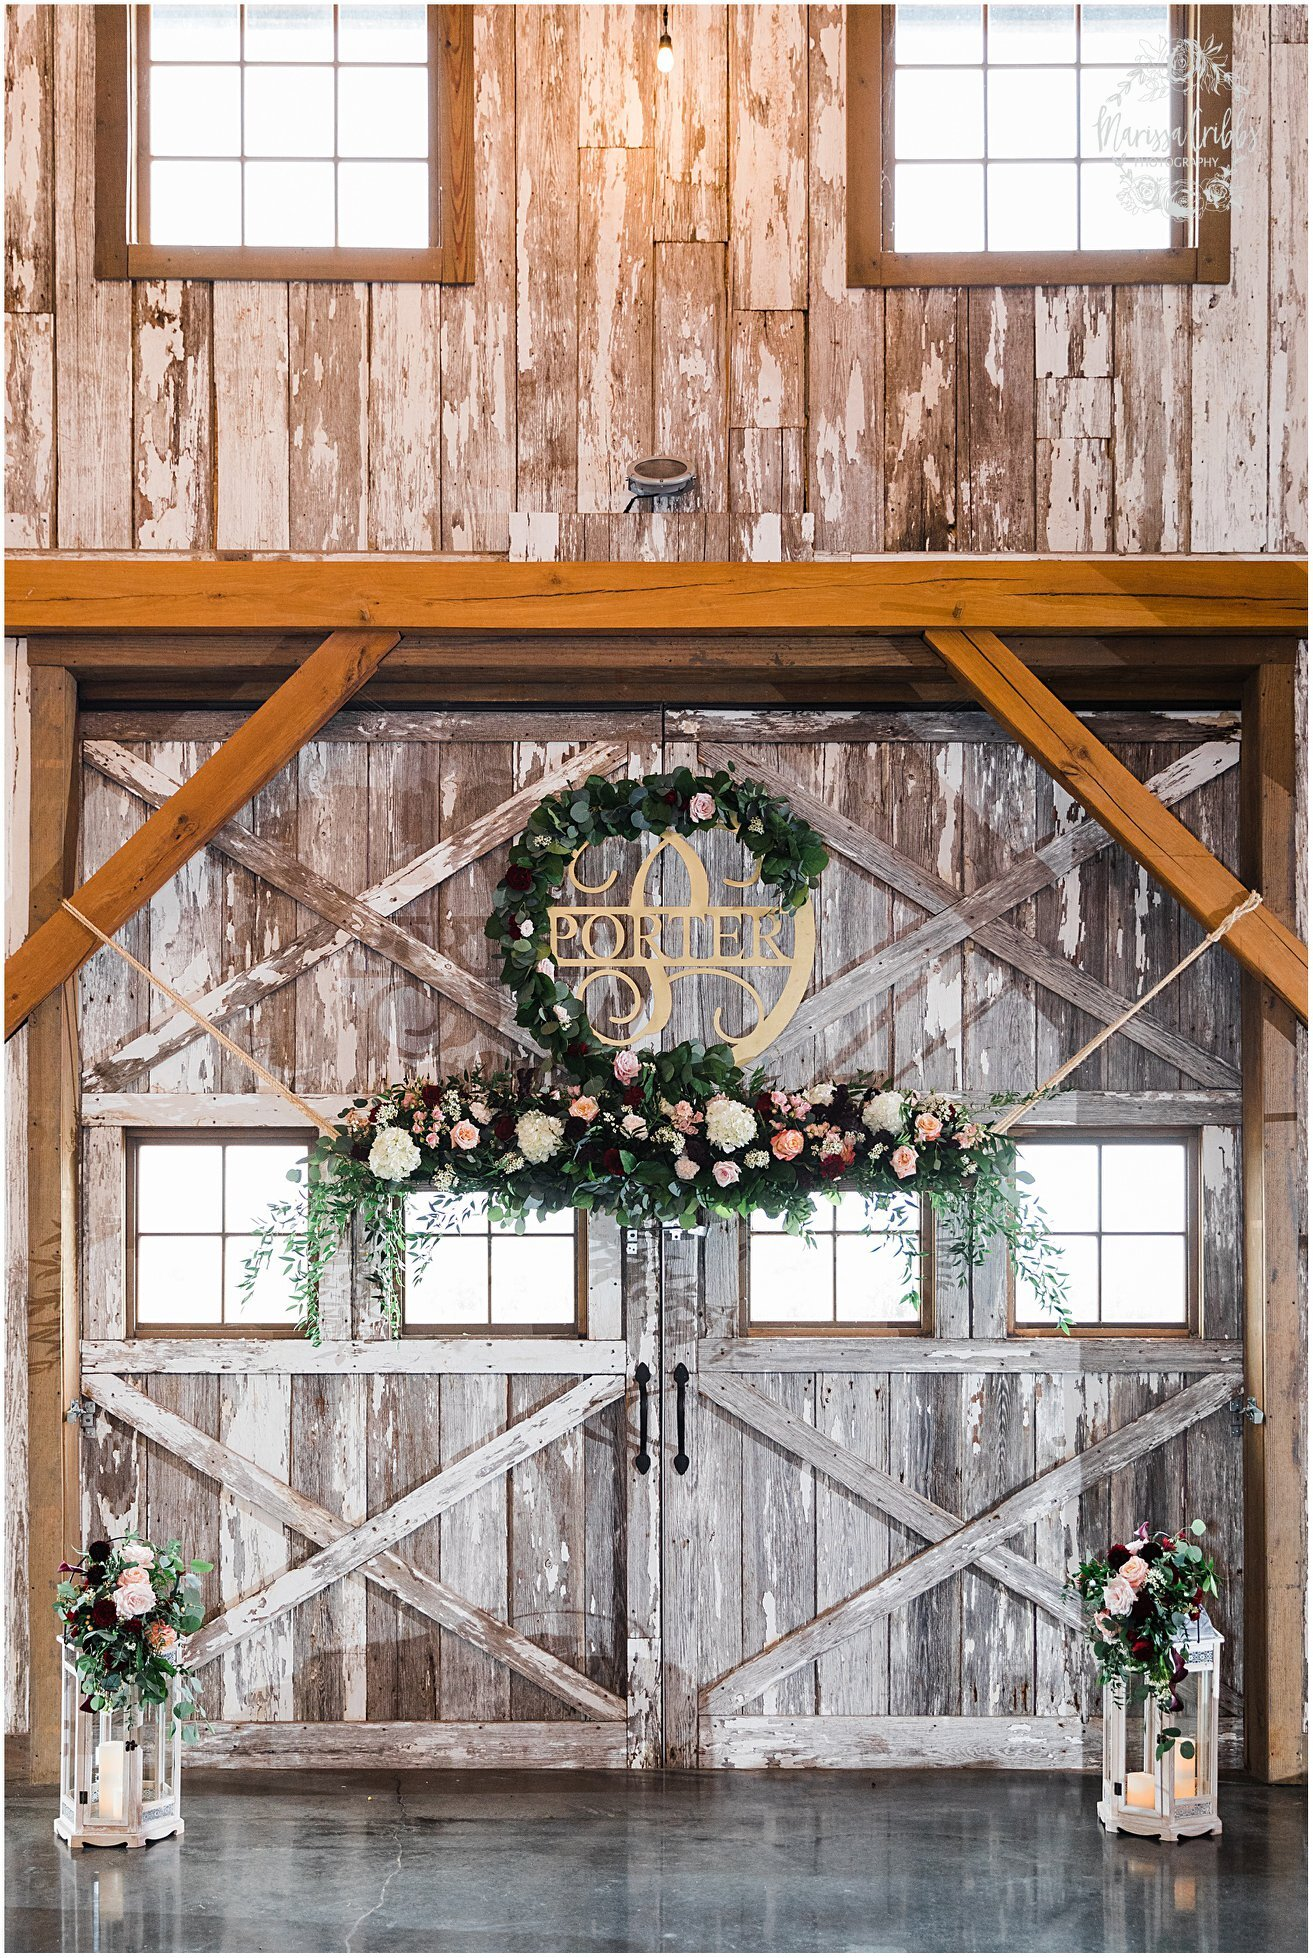 Wedding Arch - Marrisa Cribbs Photography